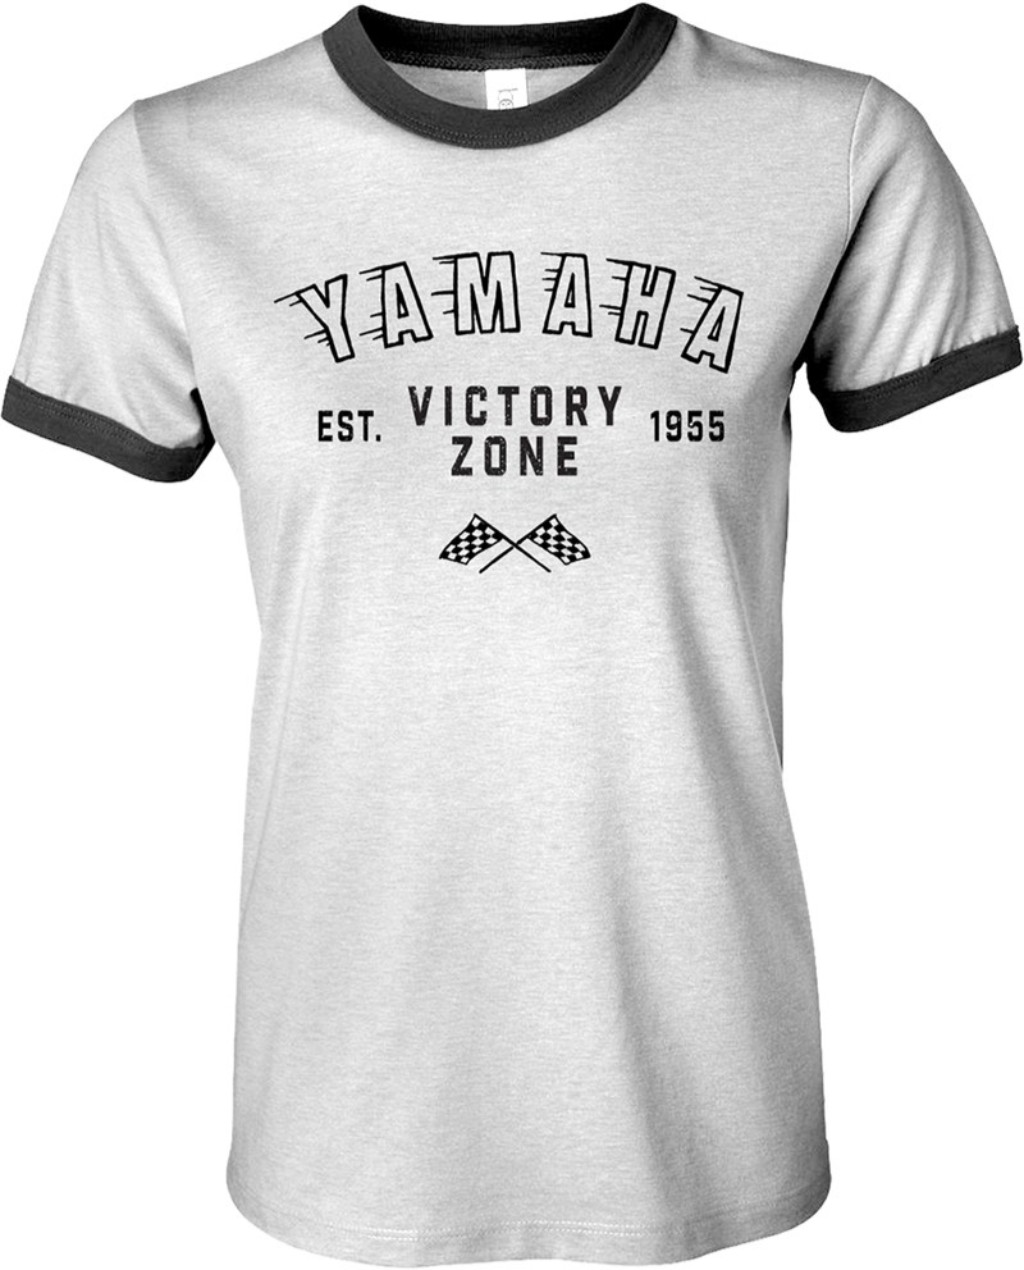 US YAMAHA Yamaha Racing Victory Zone Tee Ladies